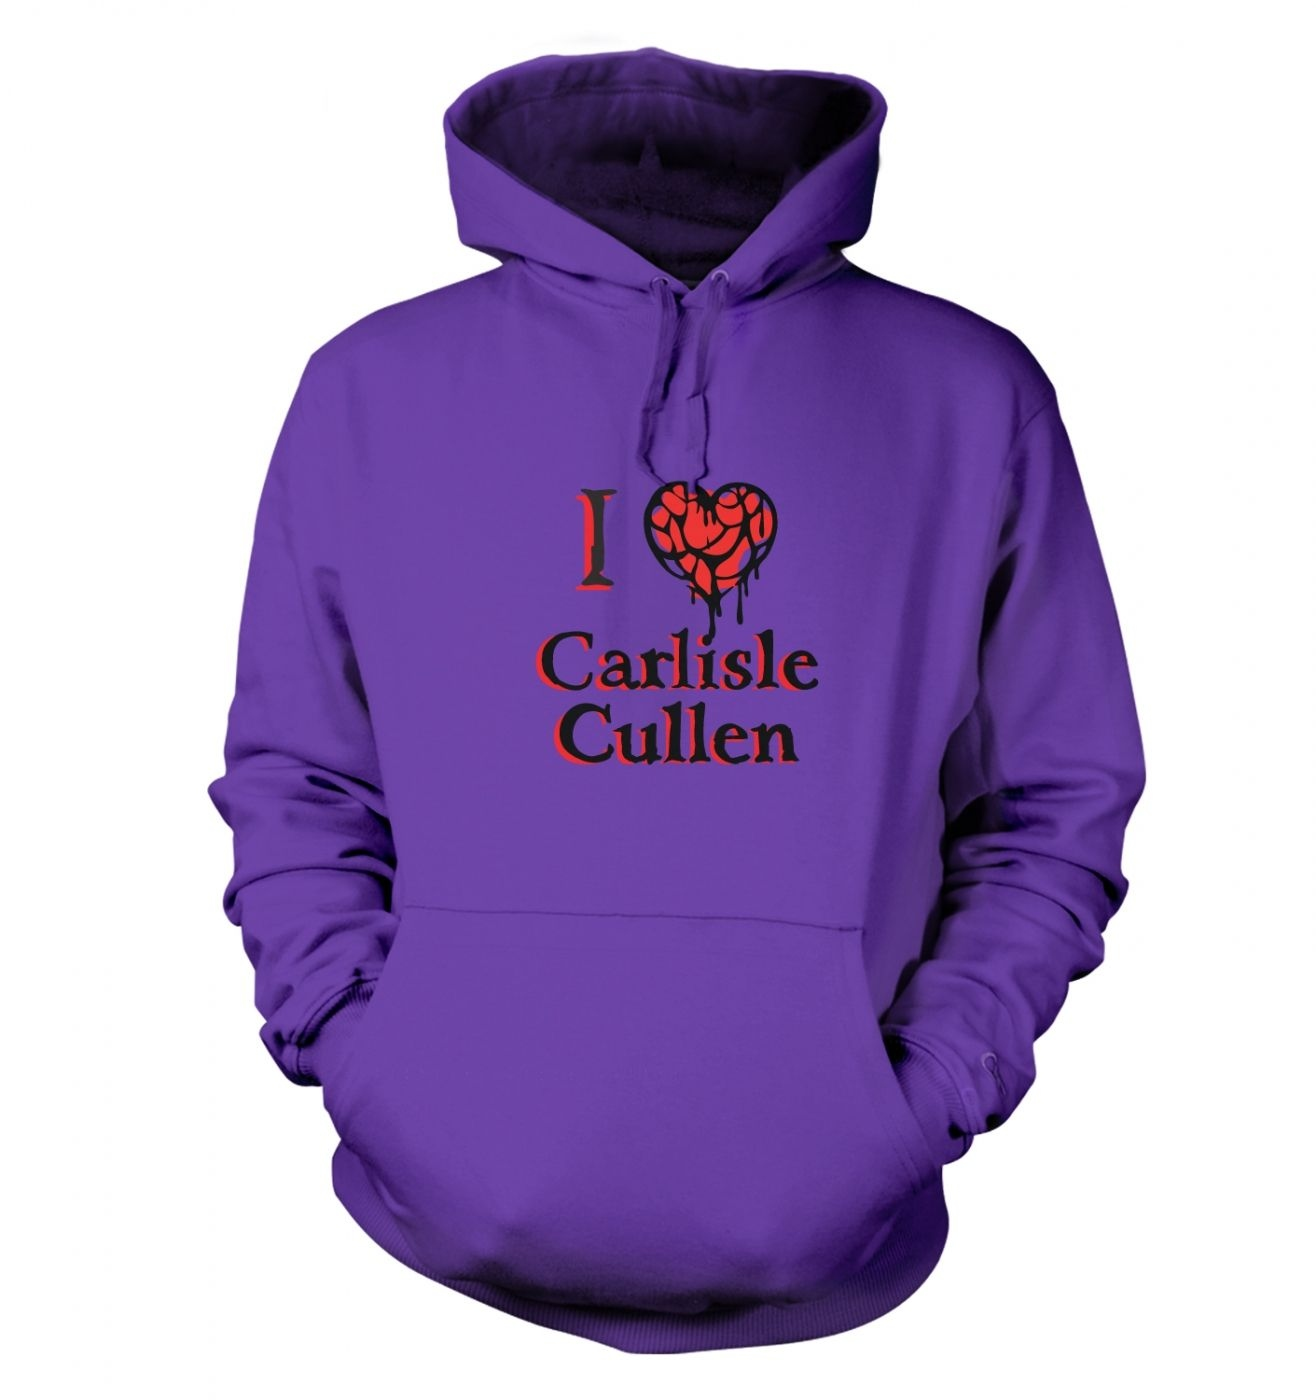 I heart Carlisle Cullen hoodie - Inspired by Twilight